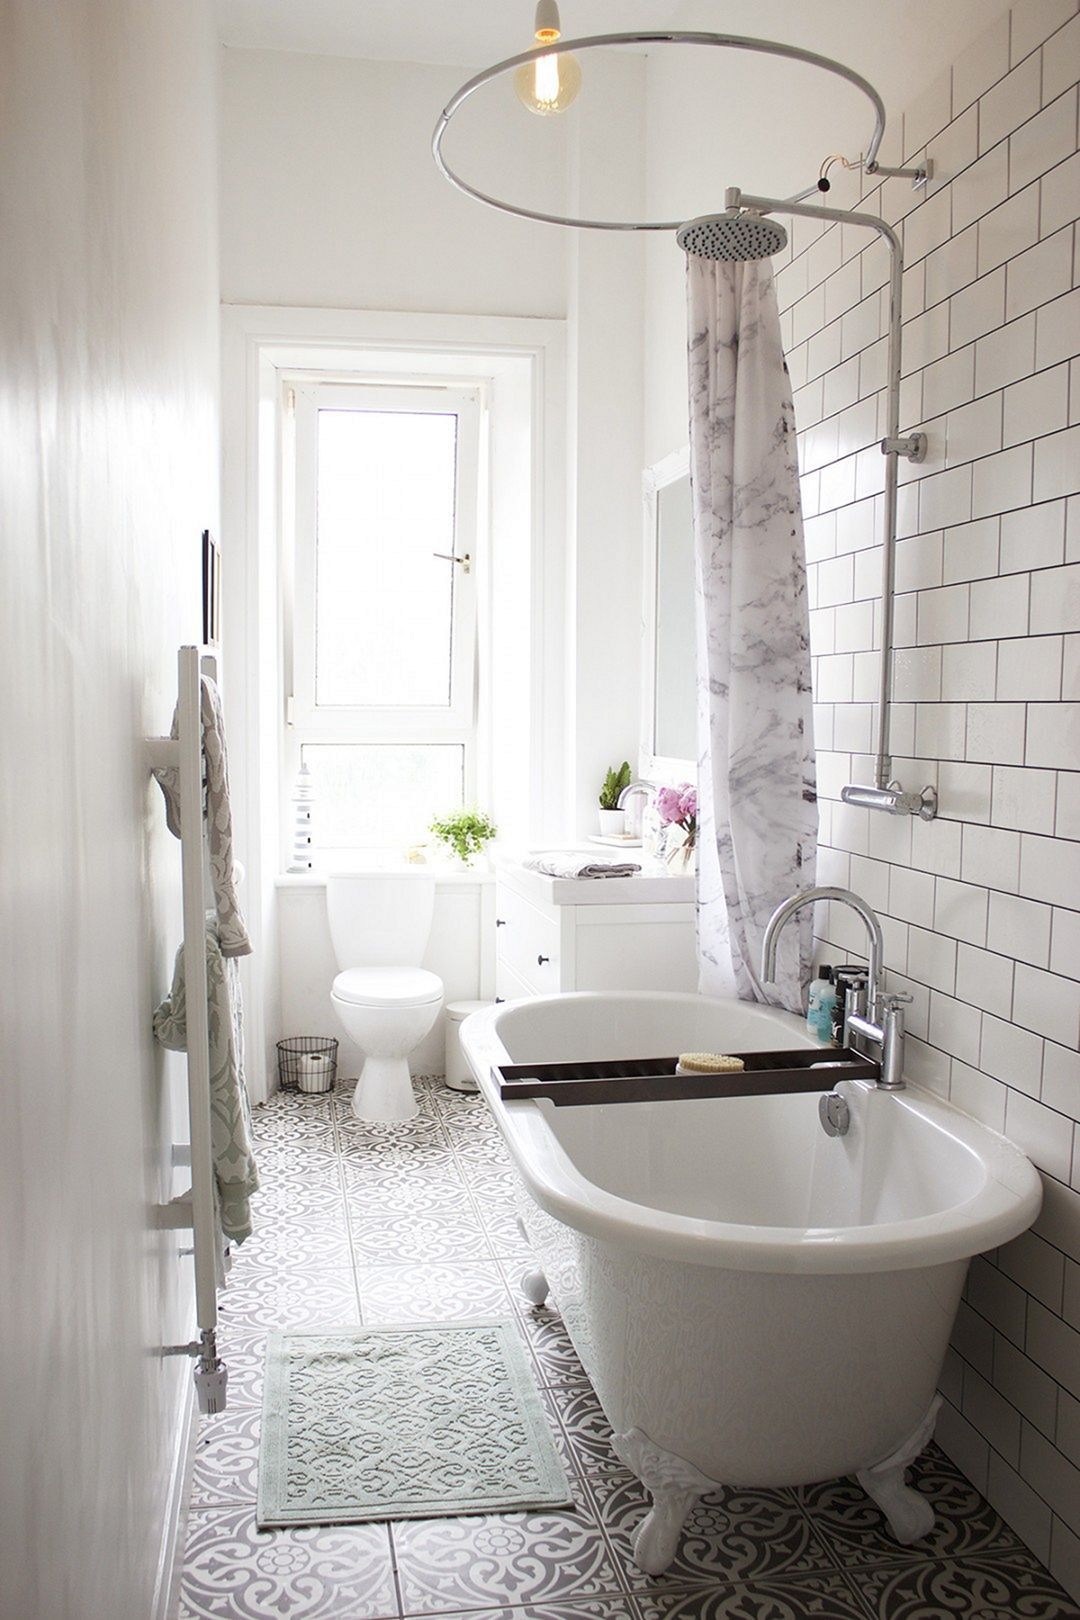 115 Extraordinary Small Bathroom Designs For Small Space | Small ...